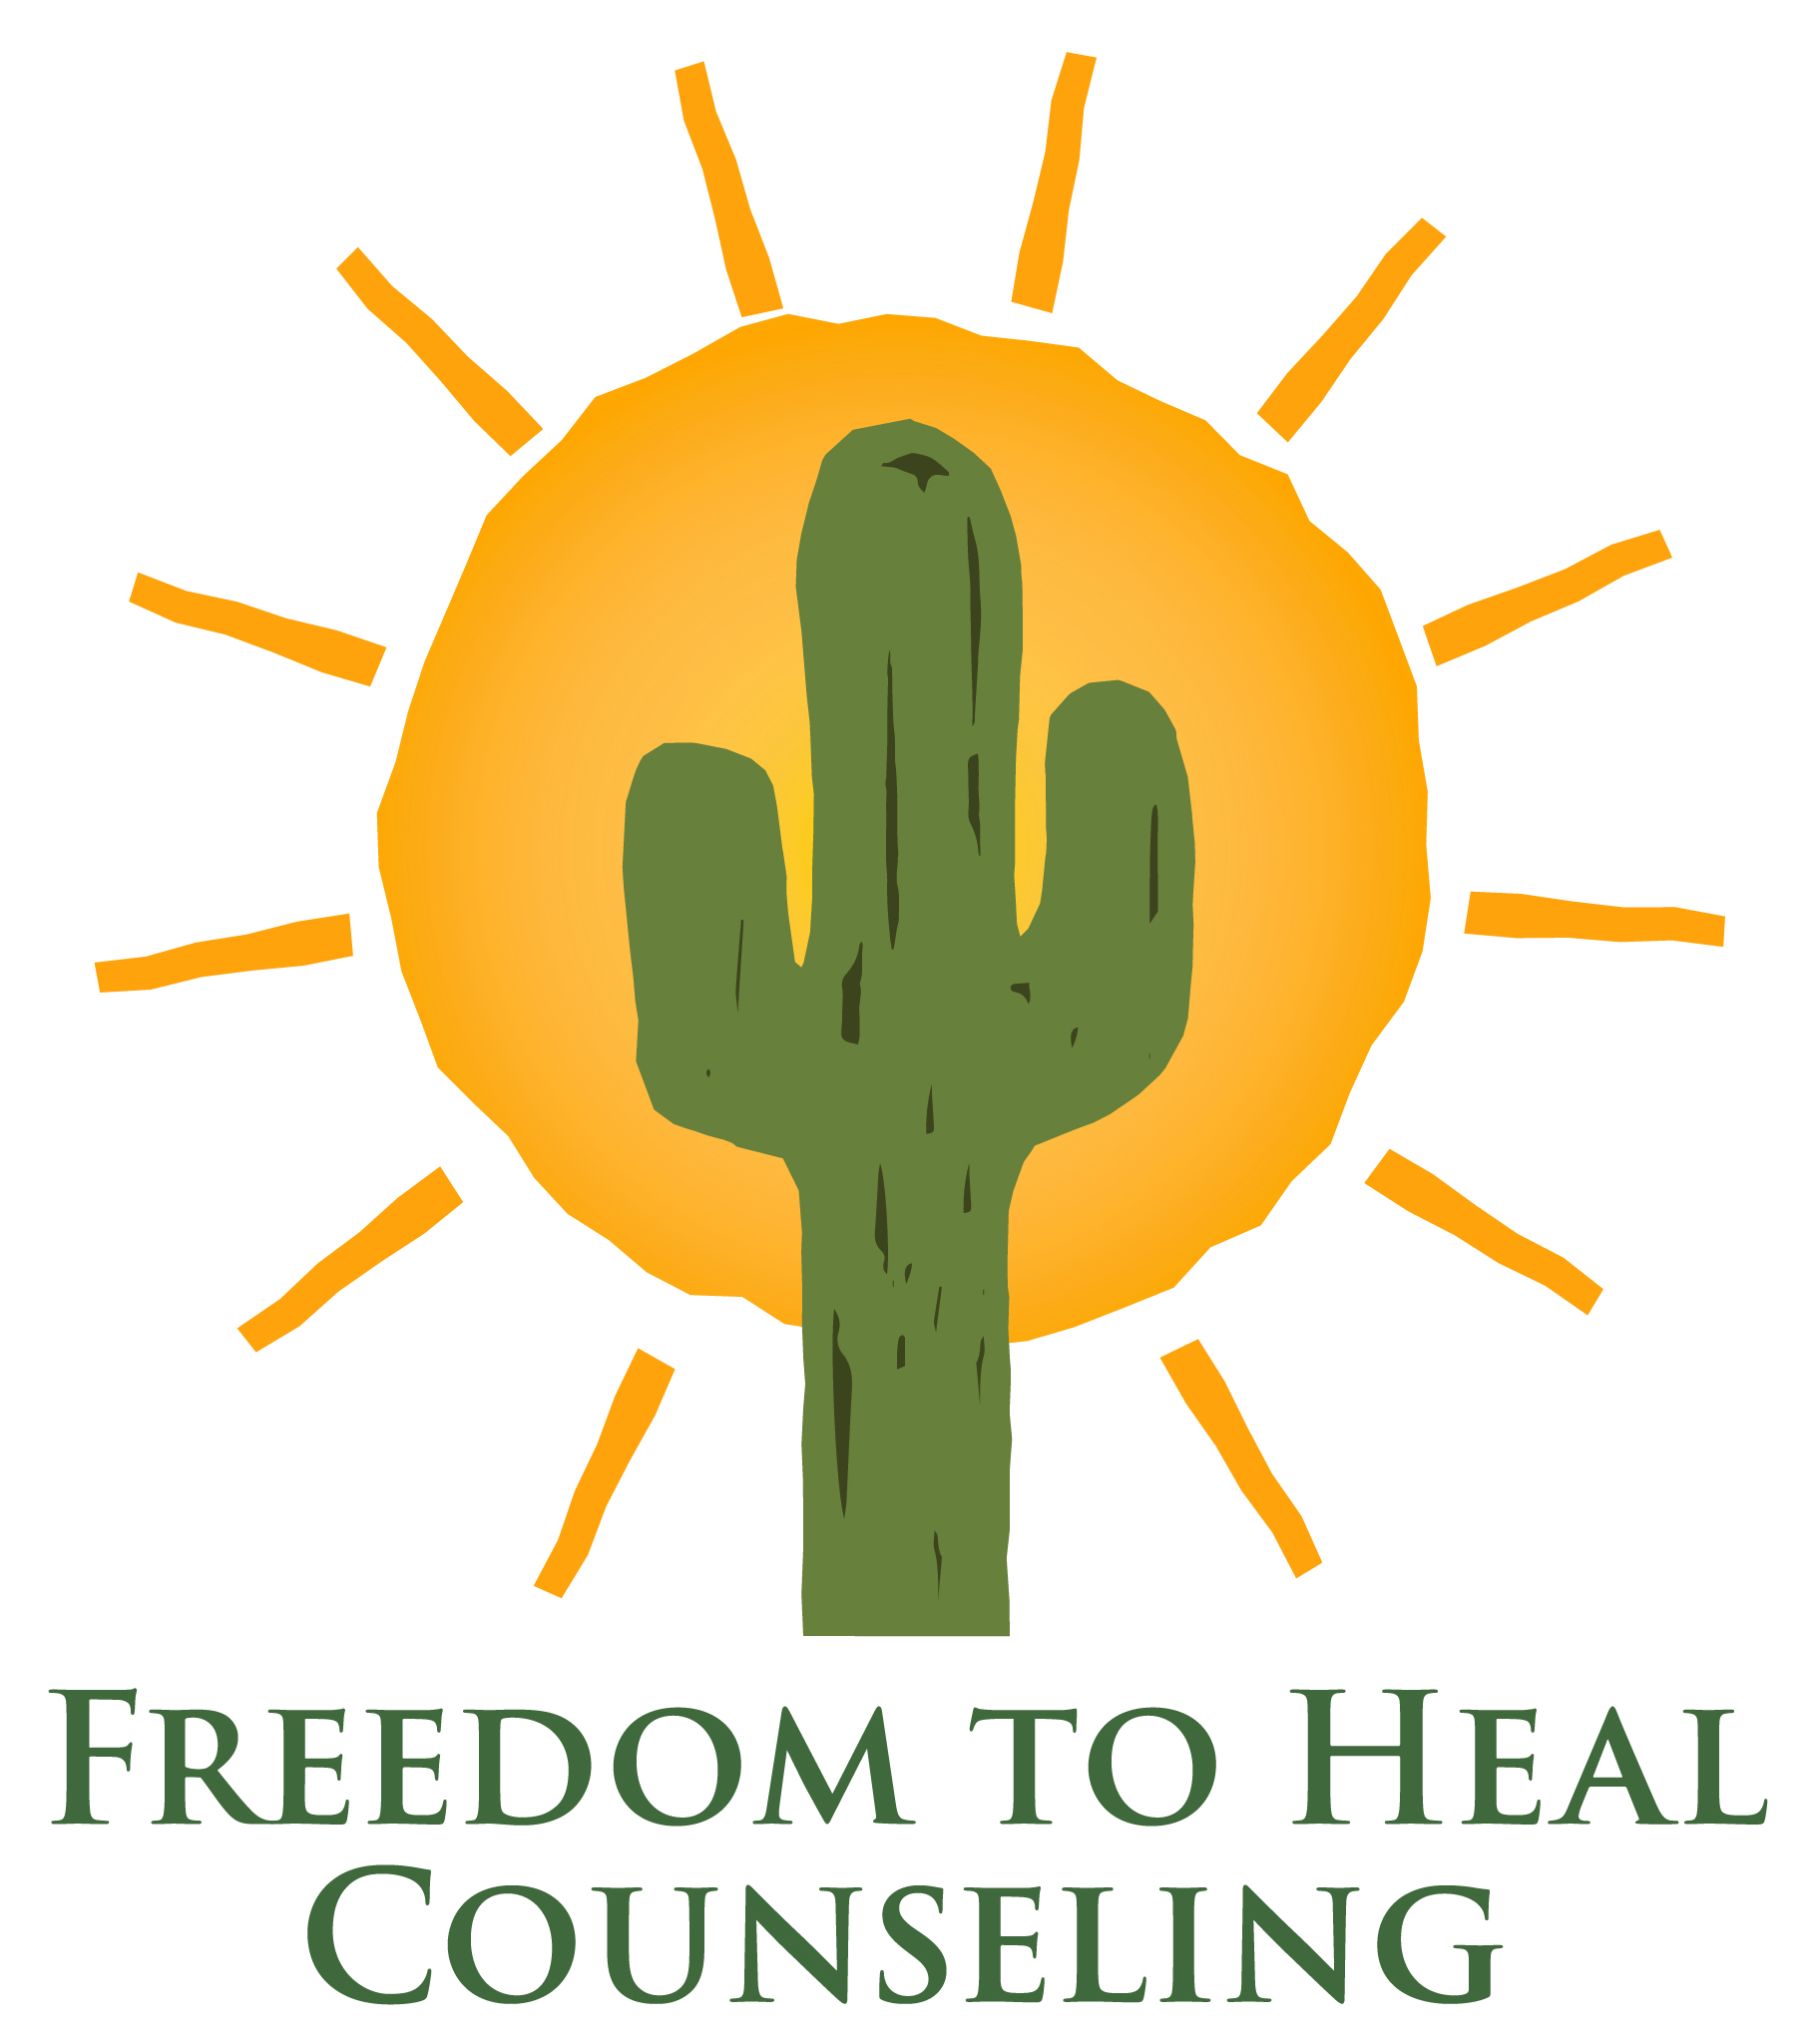 Freedom to Heal Counseling